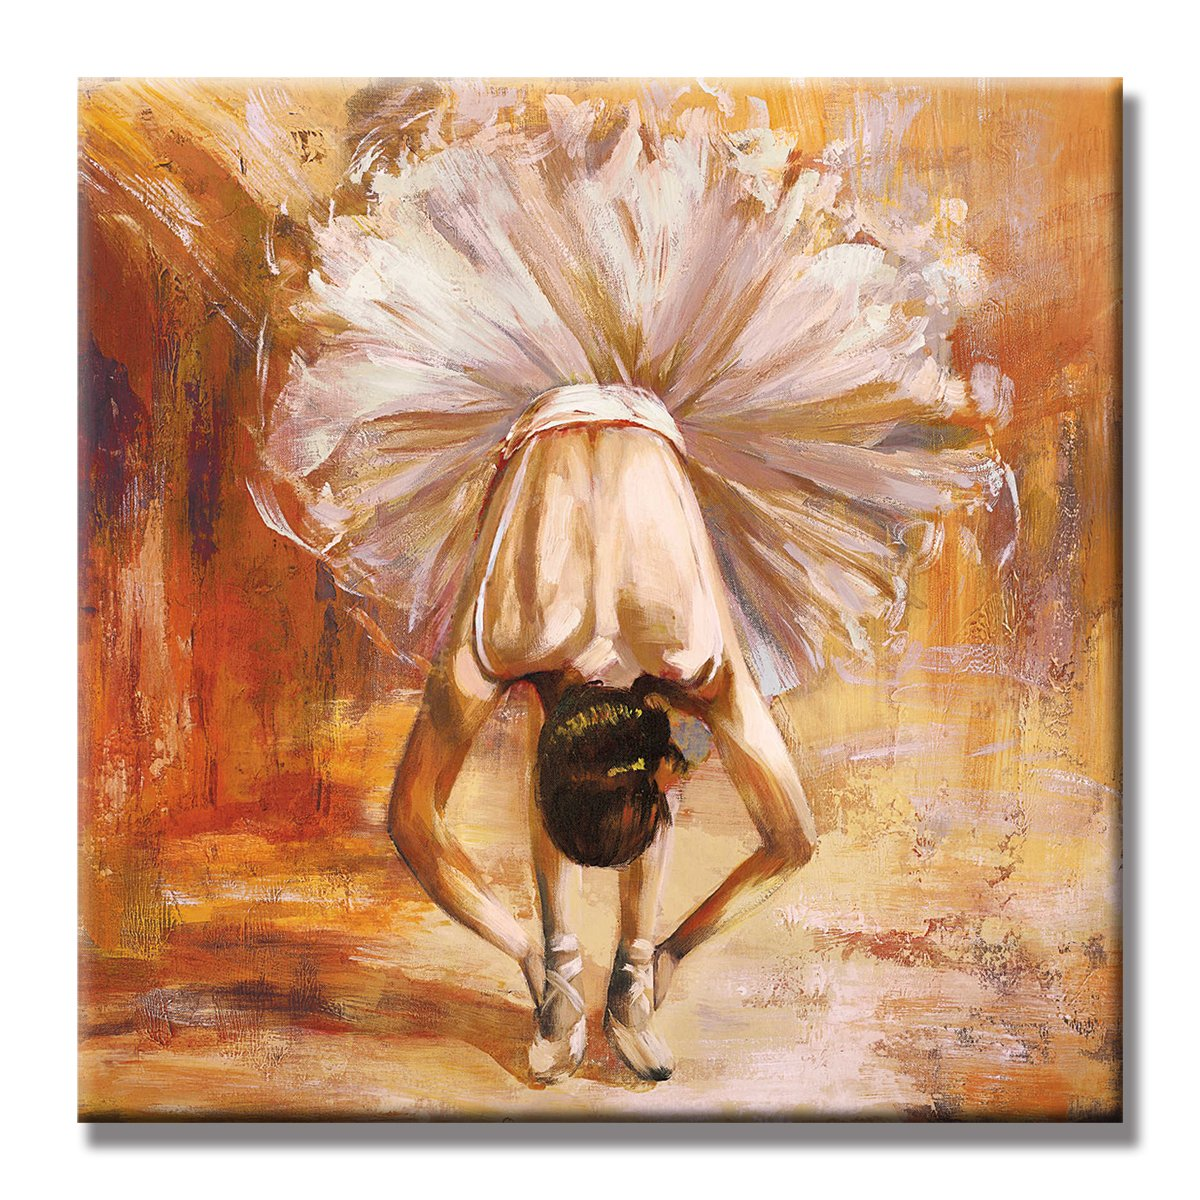 SEVEN WALL ARTS - 100 % Hand Painted Abstract Romantic Painting Ready to Hang for Home Decor (Girl In The Dance Ballet, 24 x 24 Inch)